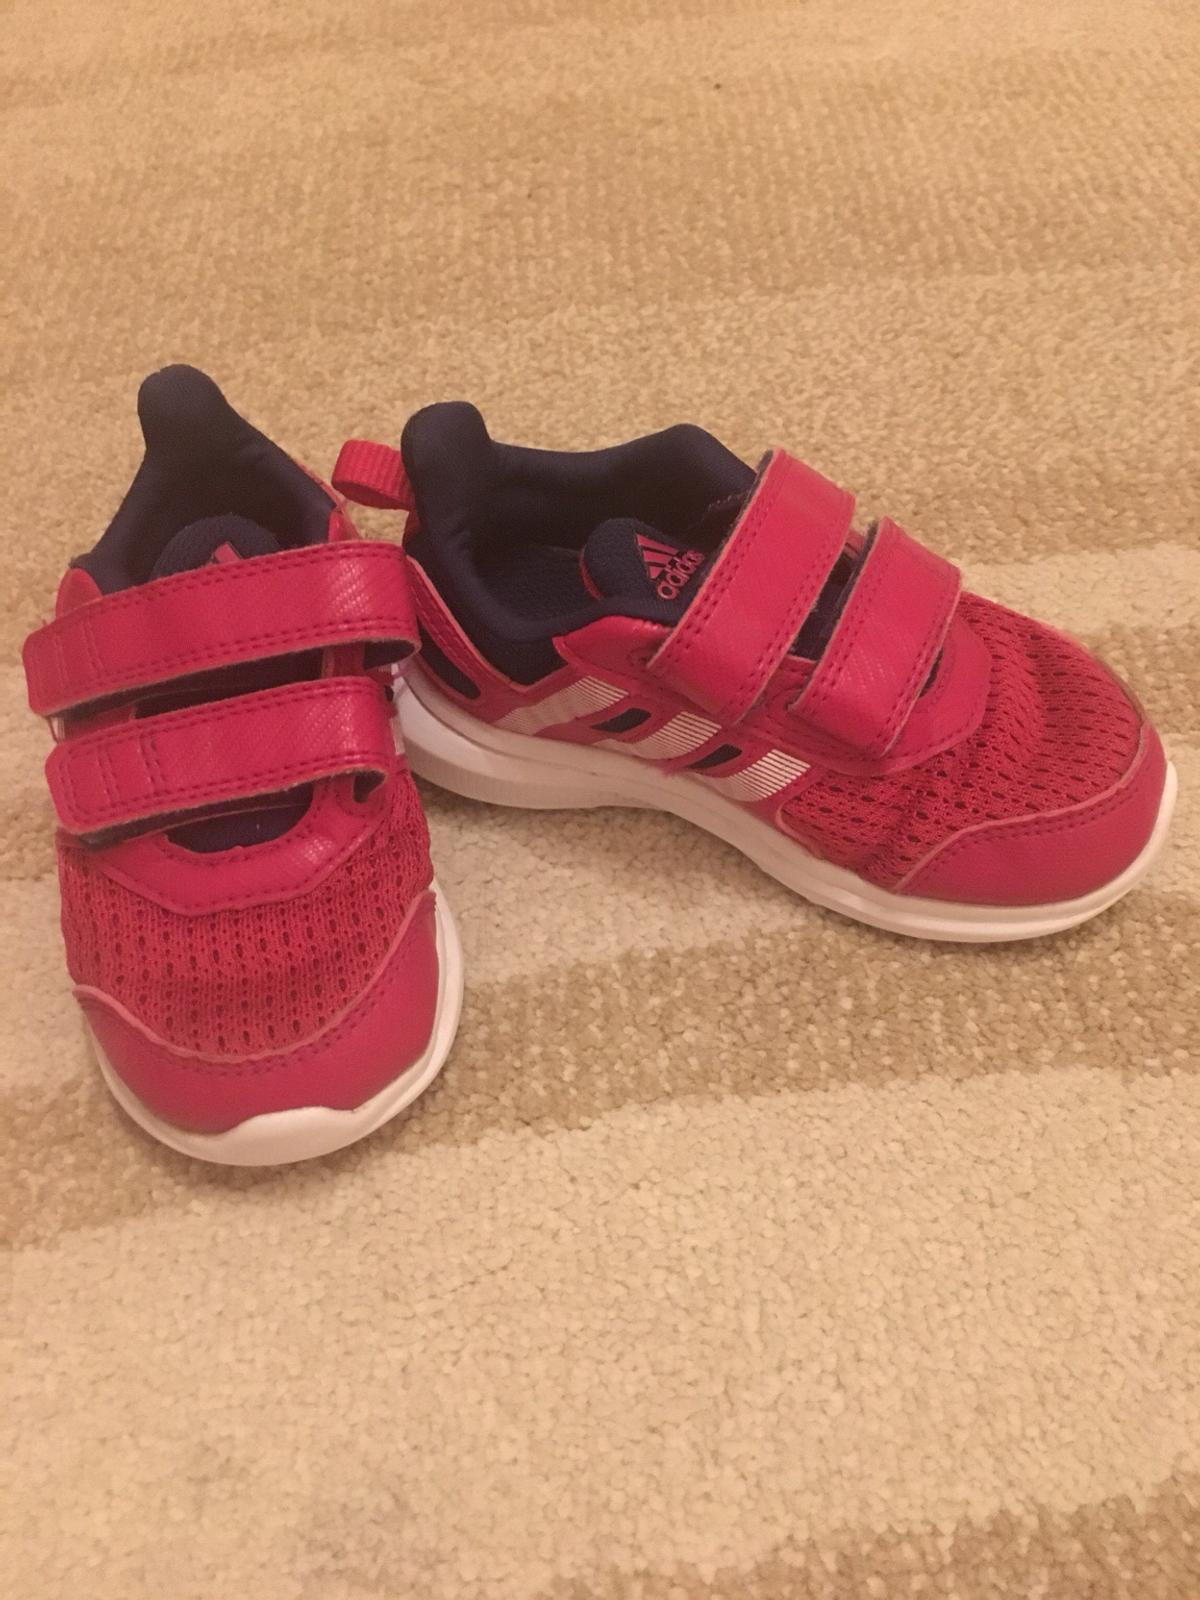 new product 96140 2be32 Adidas Mädchen Schuhe pink gr 23